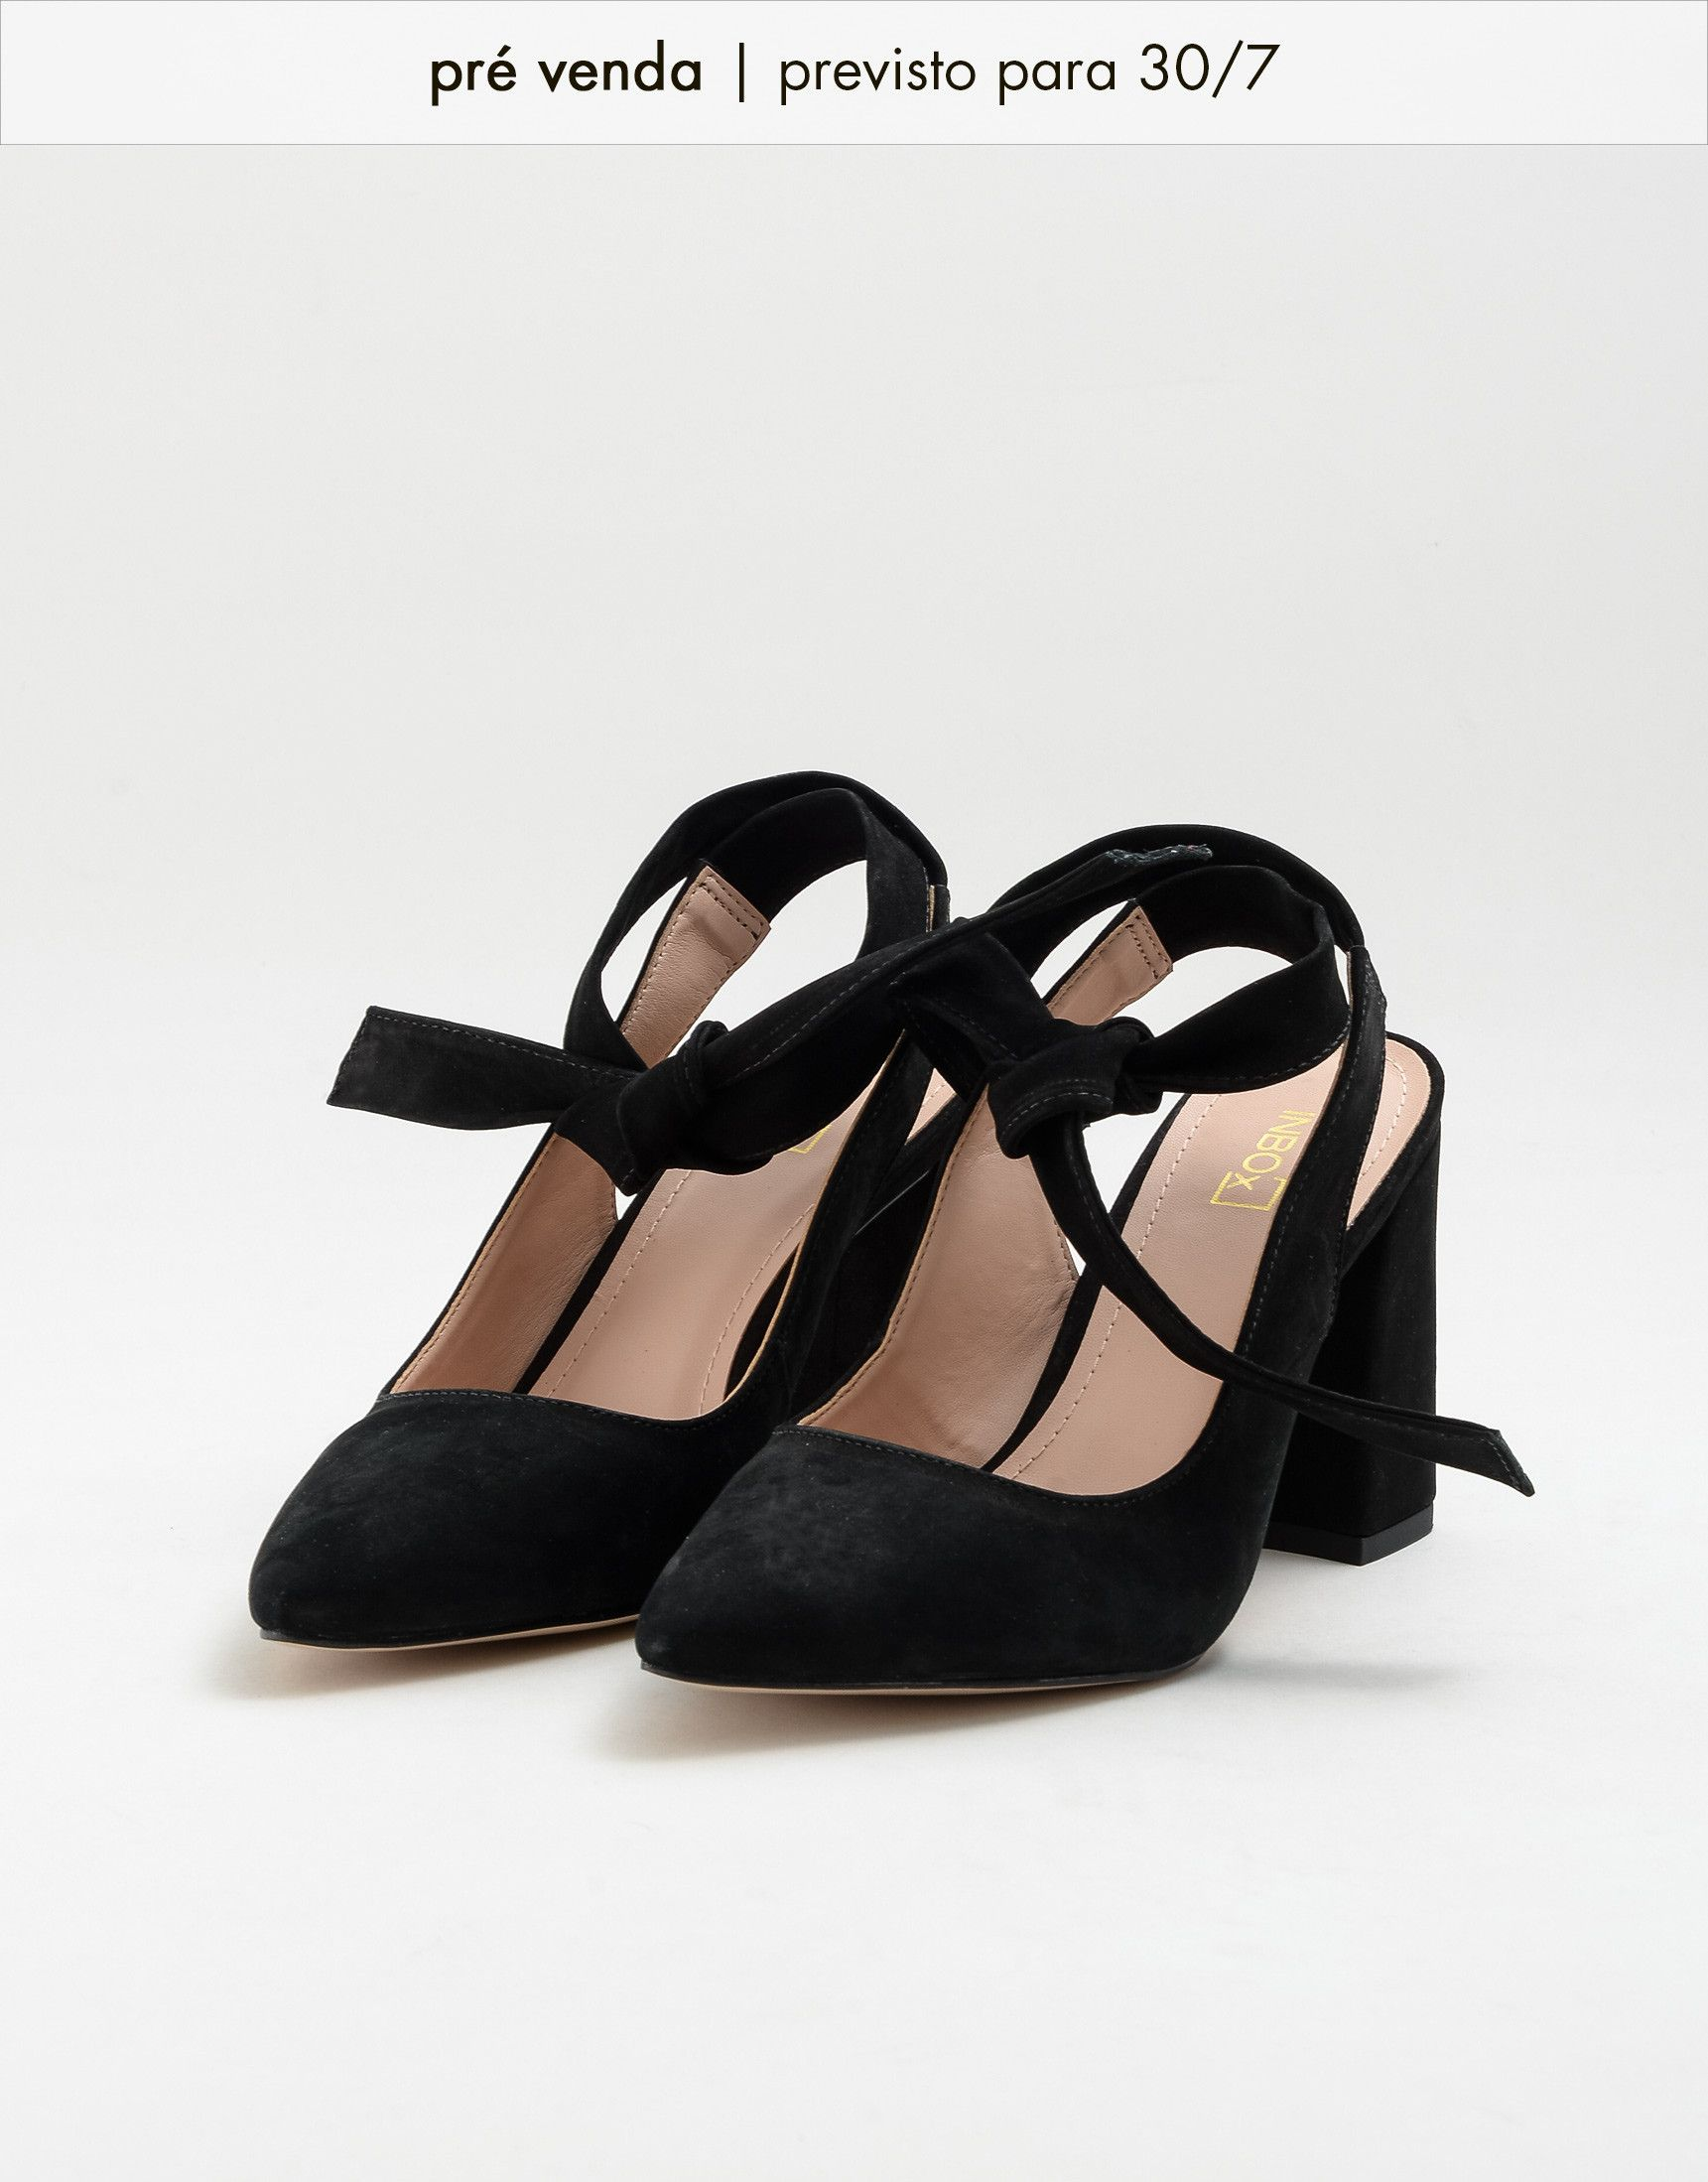 778afb072 PREVIEW  Scarpin Lace Up Nobuck Preto